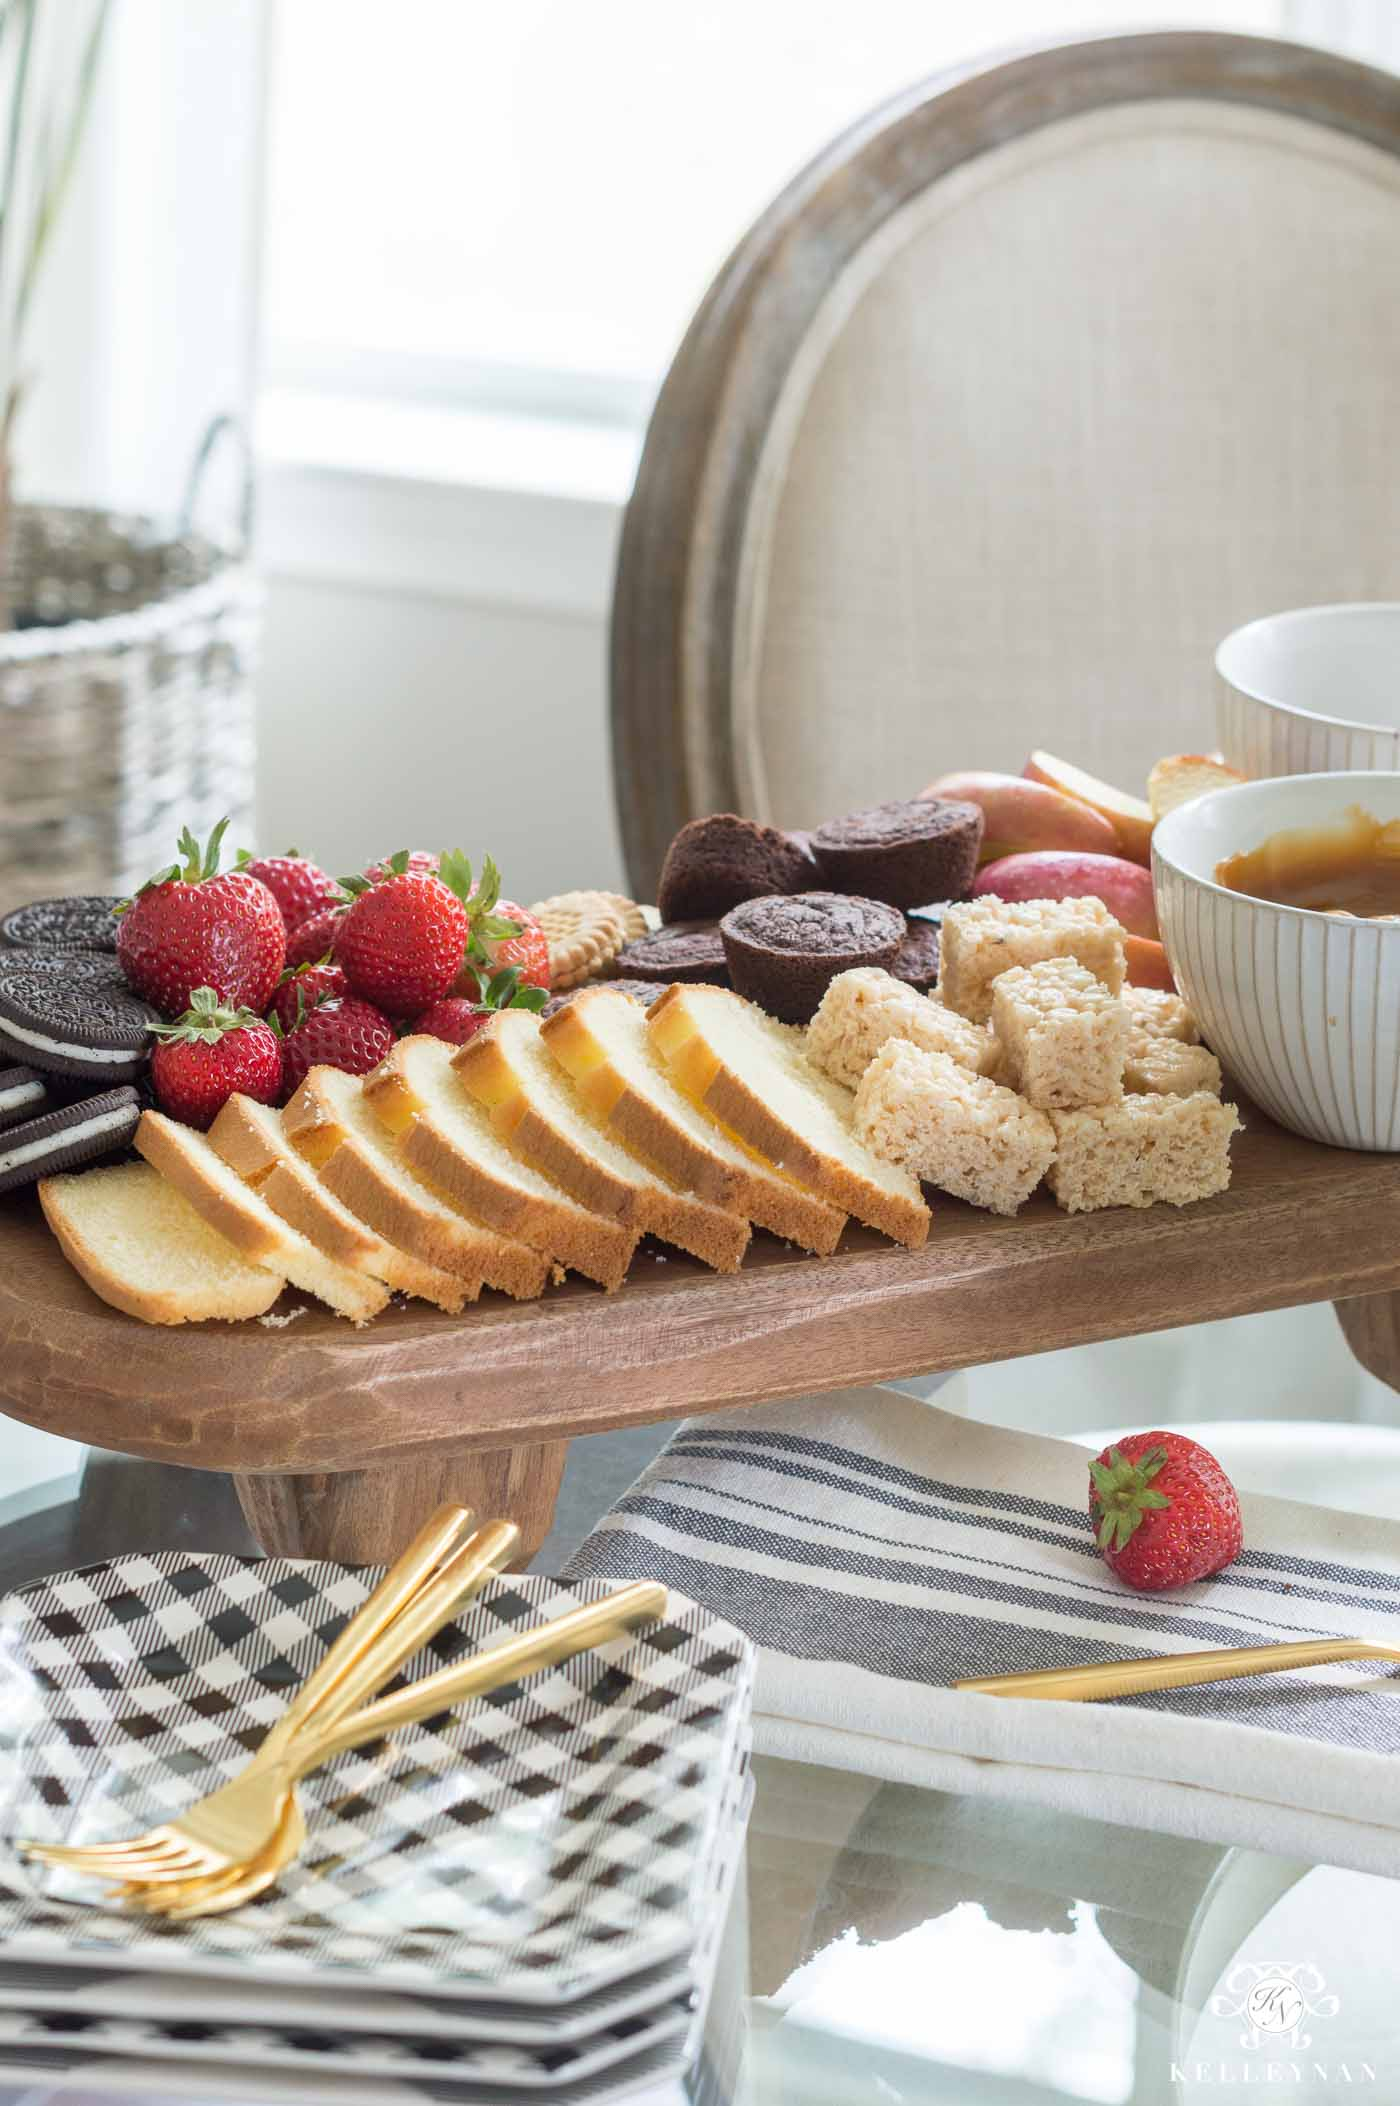 Fruit and Baked Goods Dessert Platter Ideas